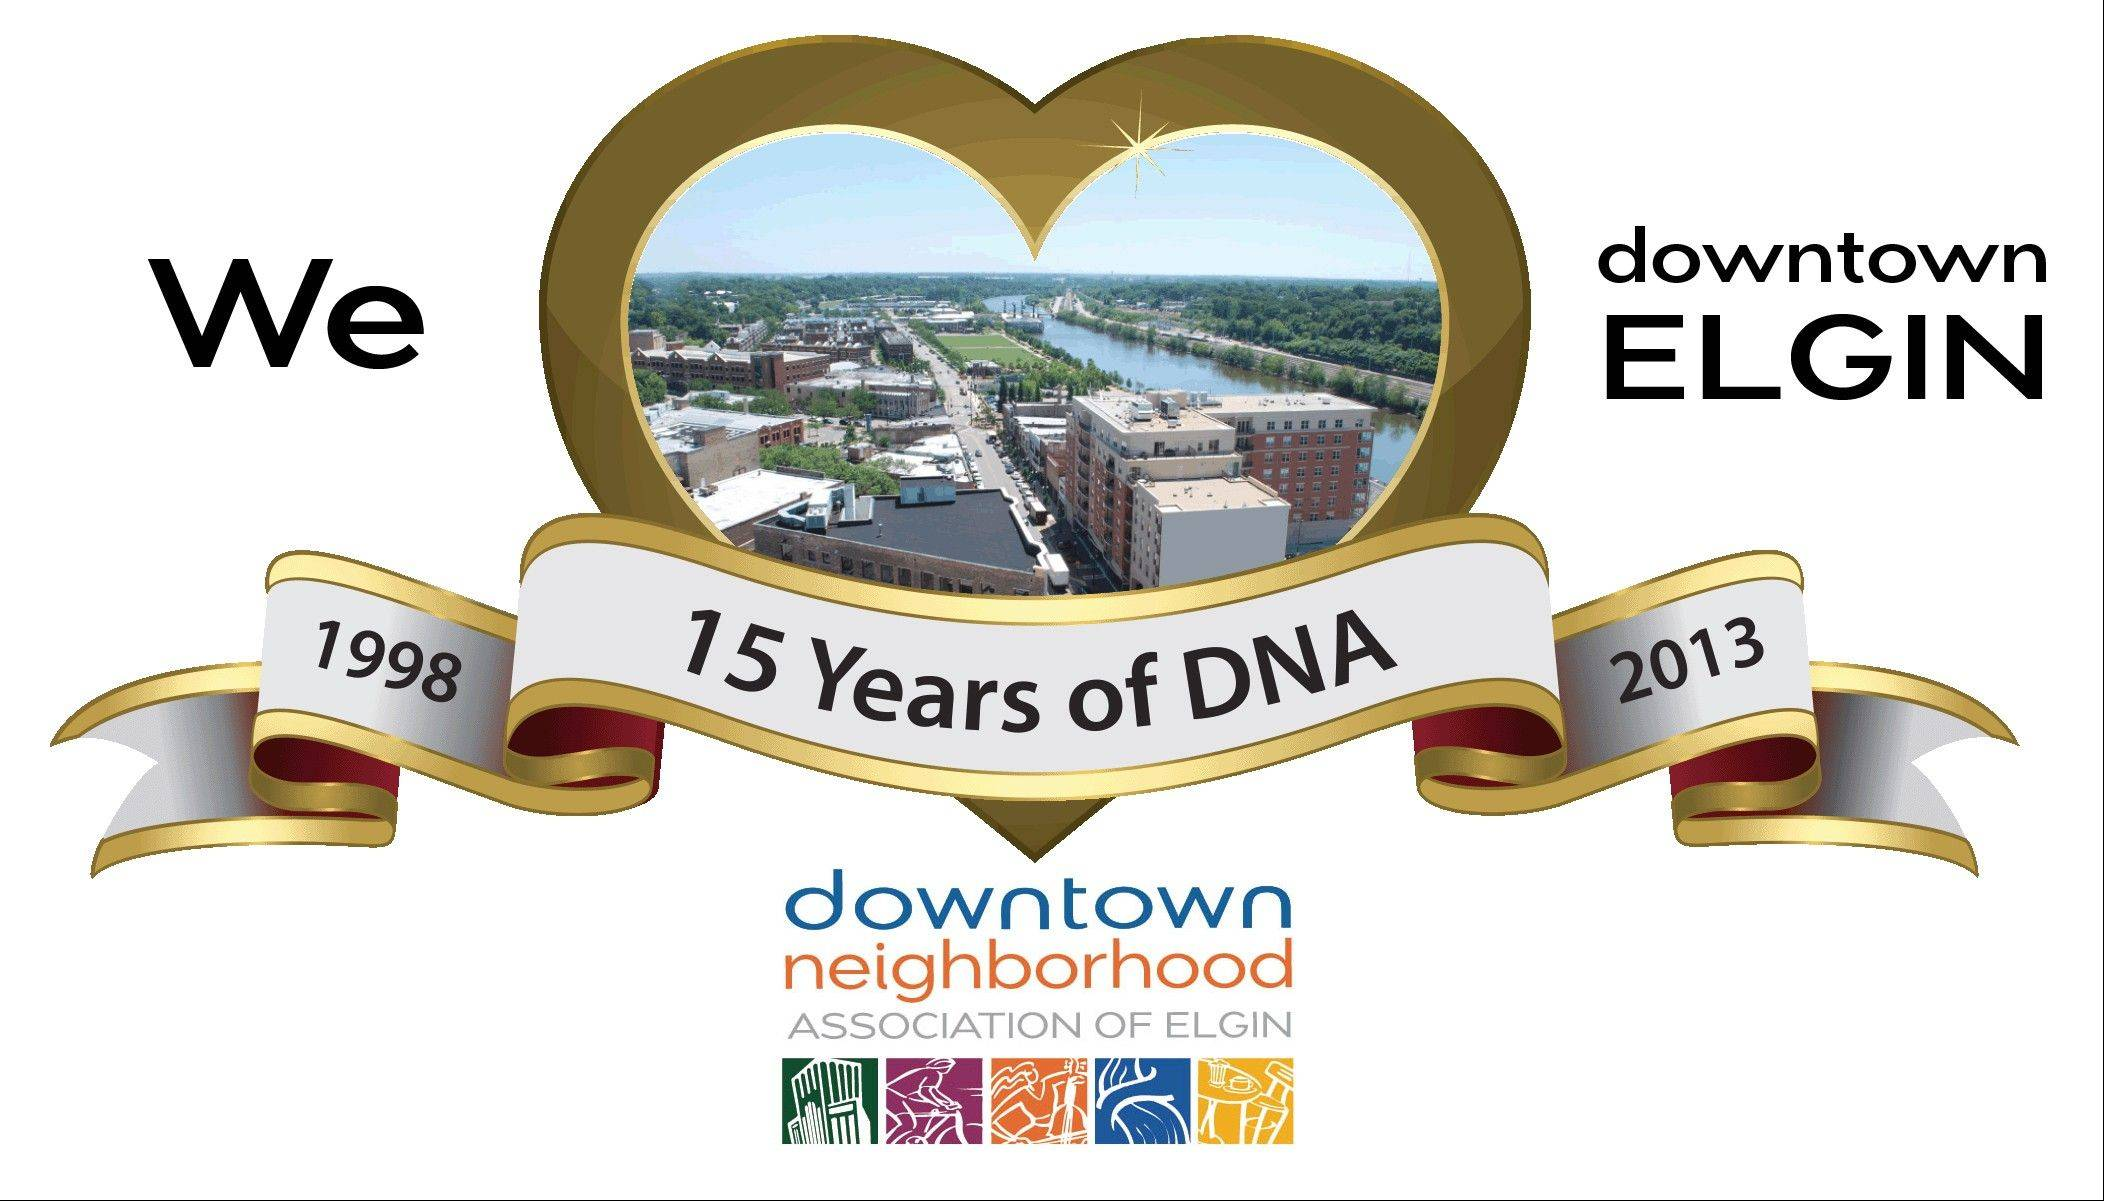 """We (Heart) Downtown Elgin"" is a new campaign the Downtown Neighborhood Association is planning to launch sometime around mid-May or early June to celebrate its 15th anniversary."